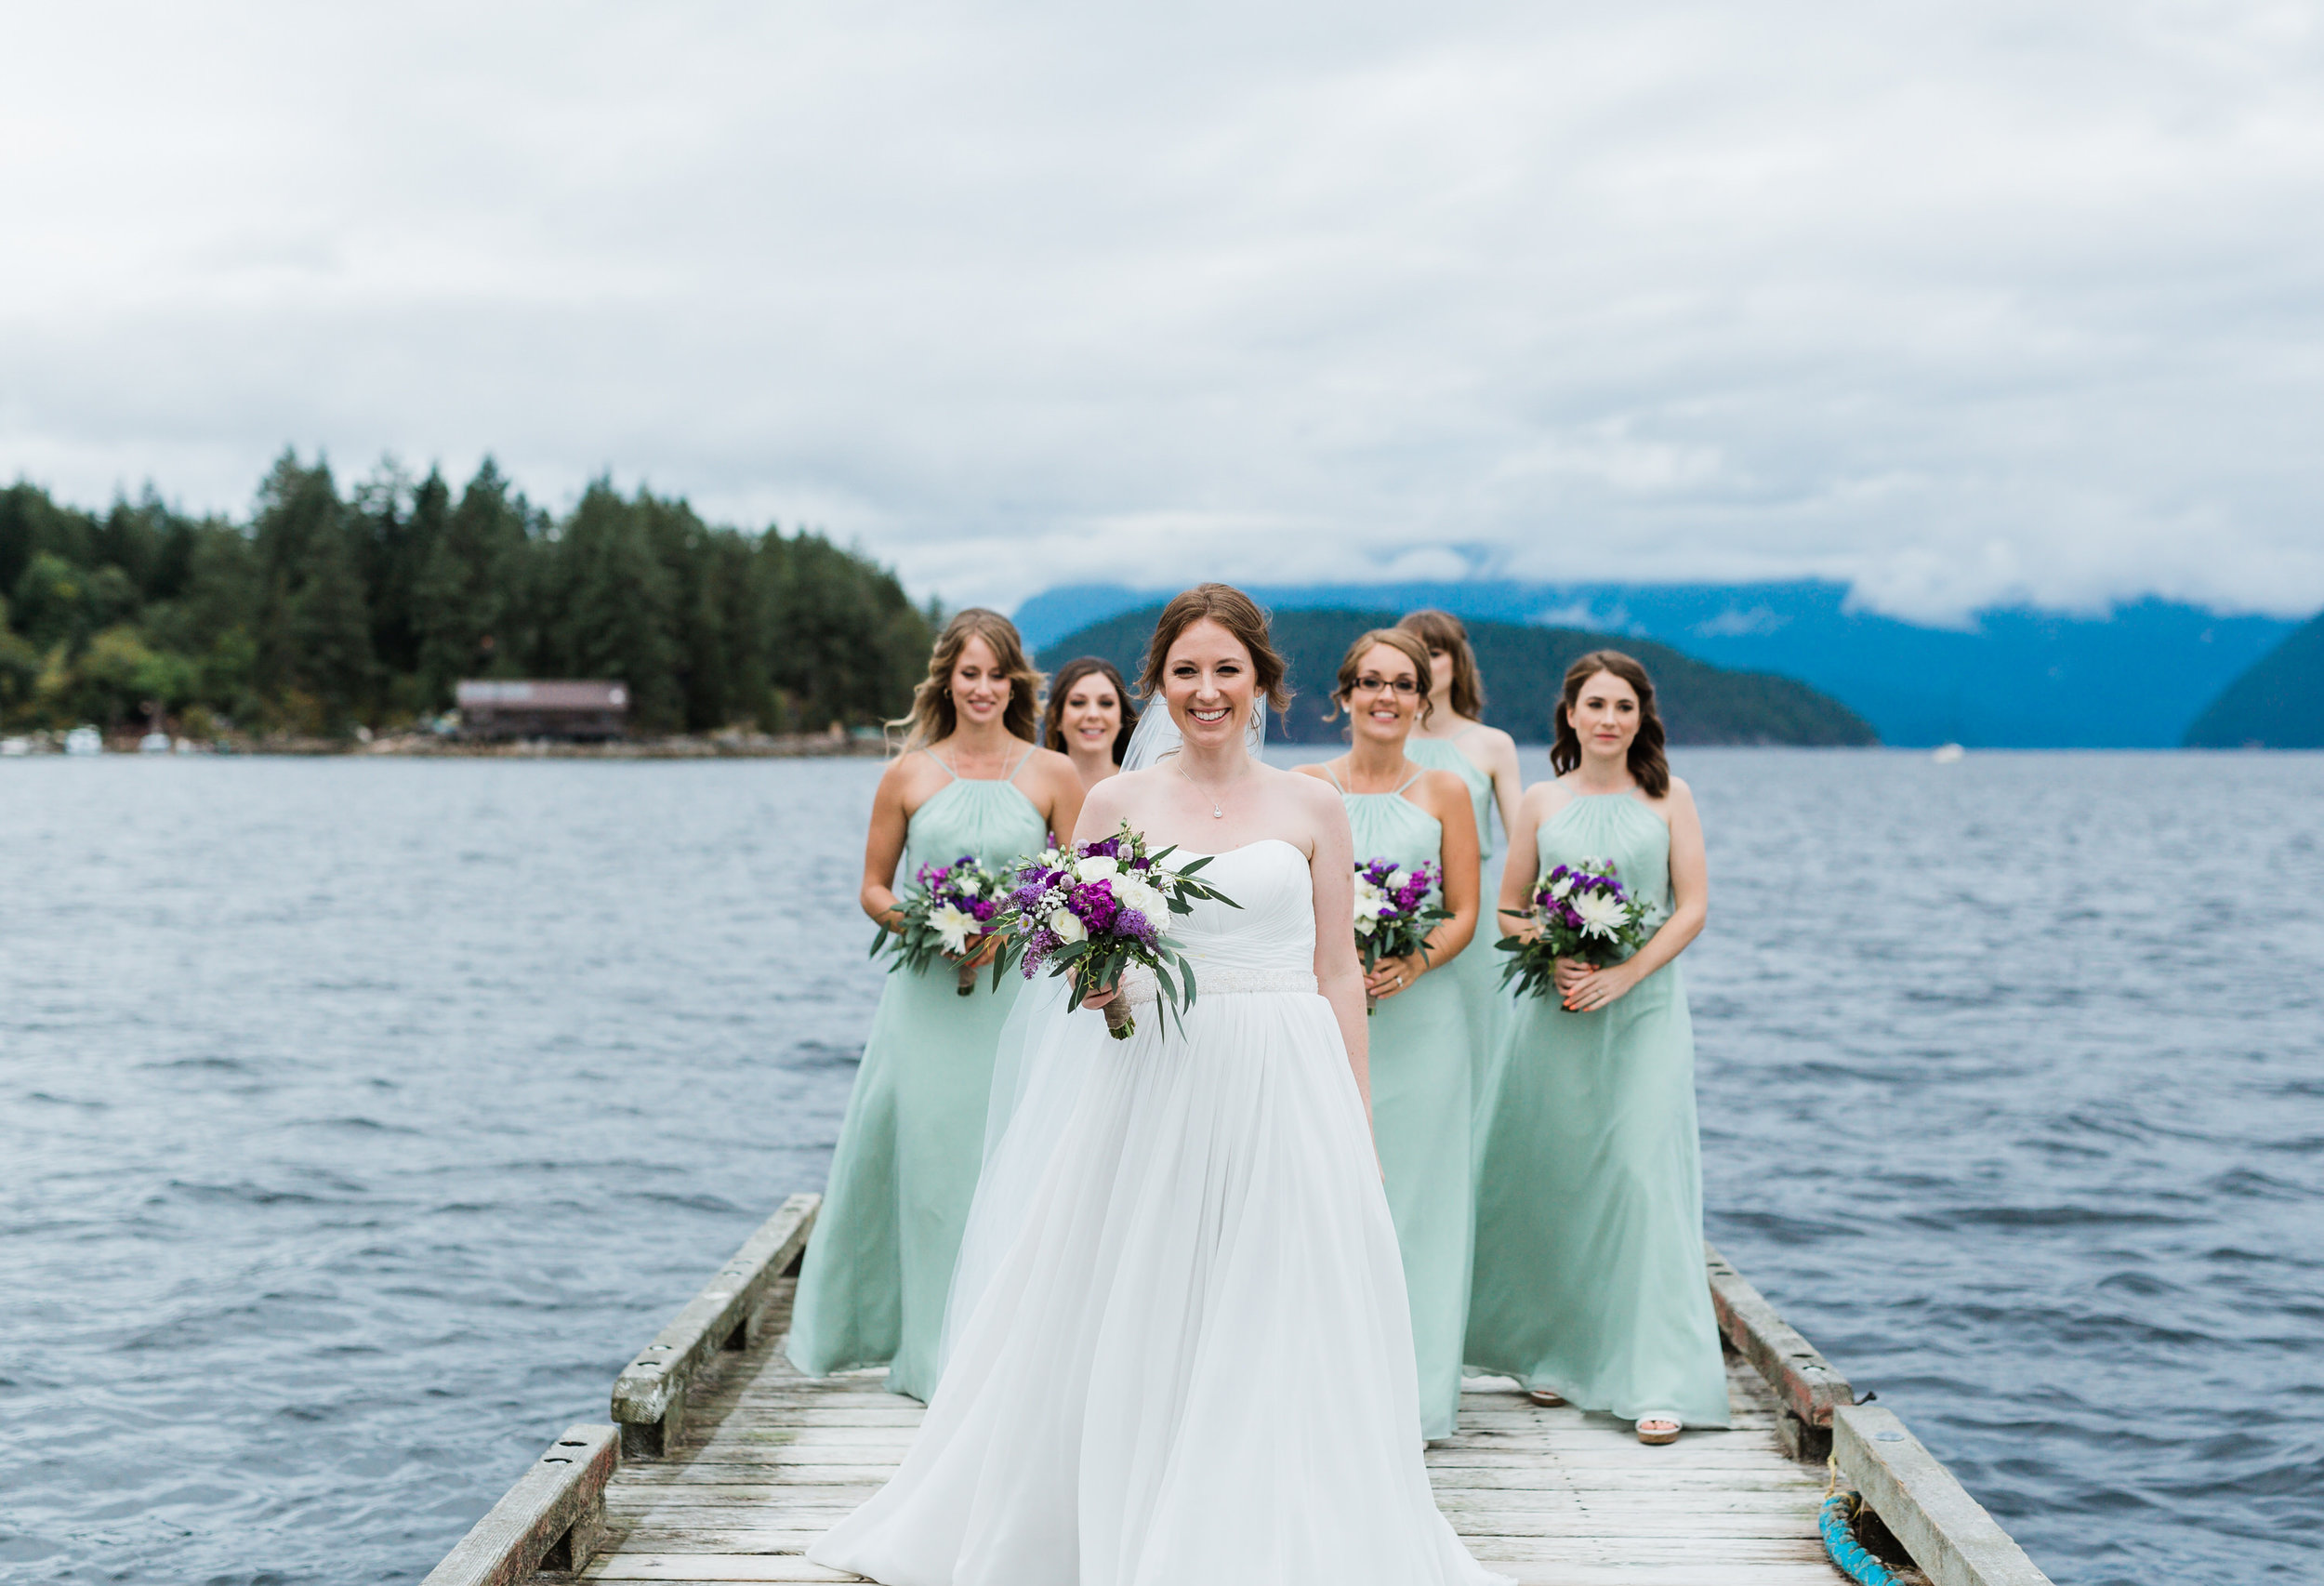 West Coast Wilderness Lodge Wedding Photos - Vancouver Wedding Photographer & Videographer - Sunshine Coast Wedding Photos - Sunshine Coast Wedding Photographer - Jennifer Picard Photography - IMG_6052.jpg